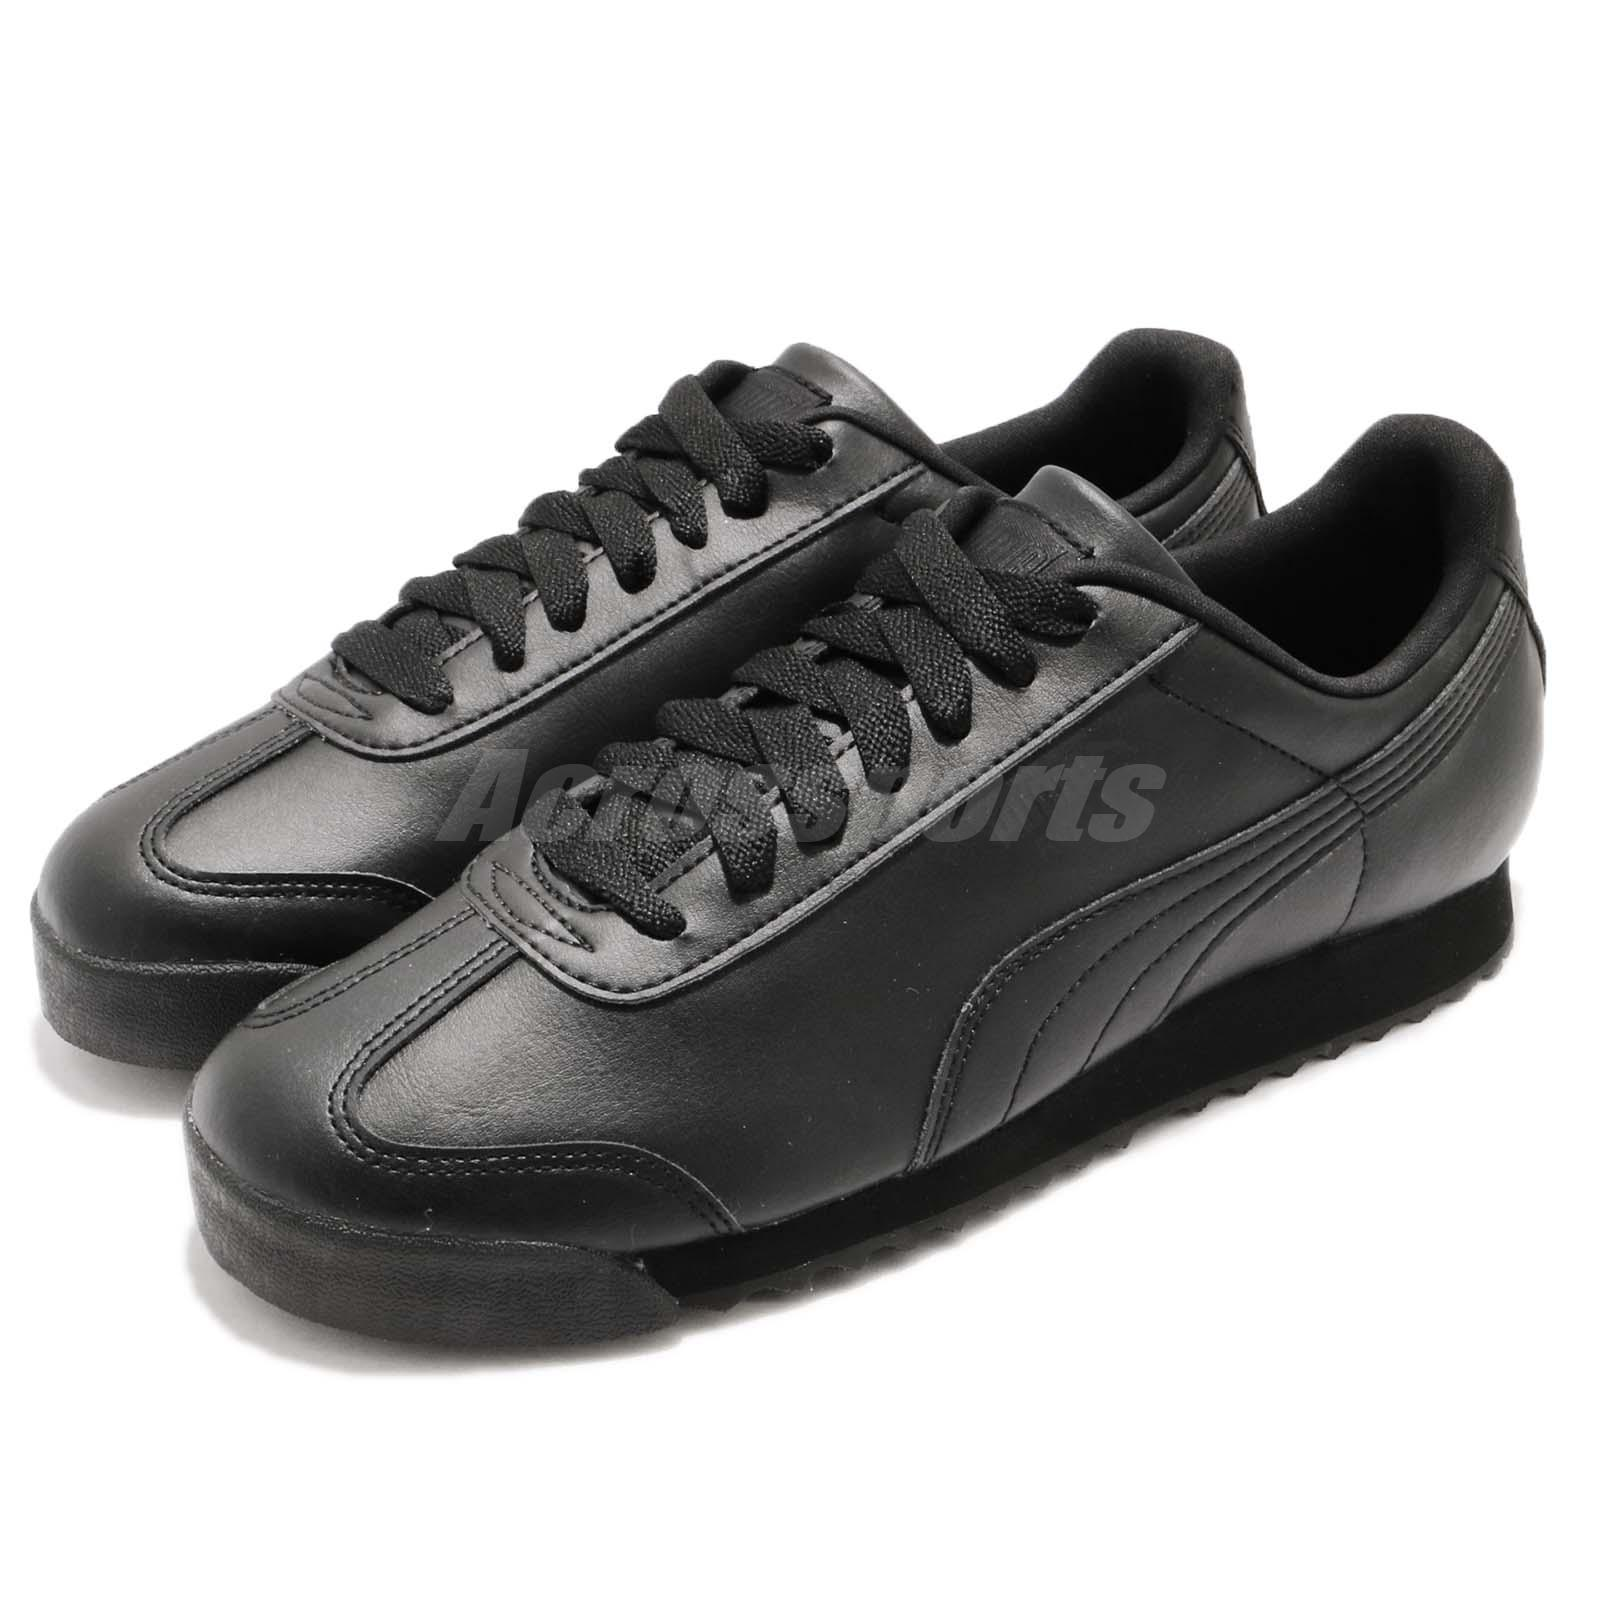 3a0345986079 Details about Puma Roma Basic Triple Black Men Running Walking Casual Shoes  Sneakers 353572-17